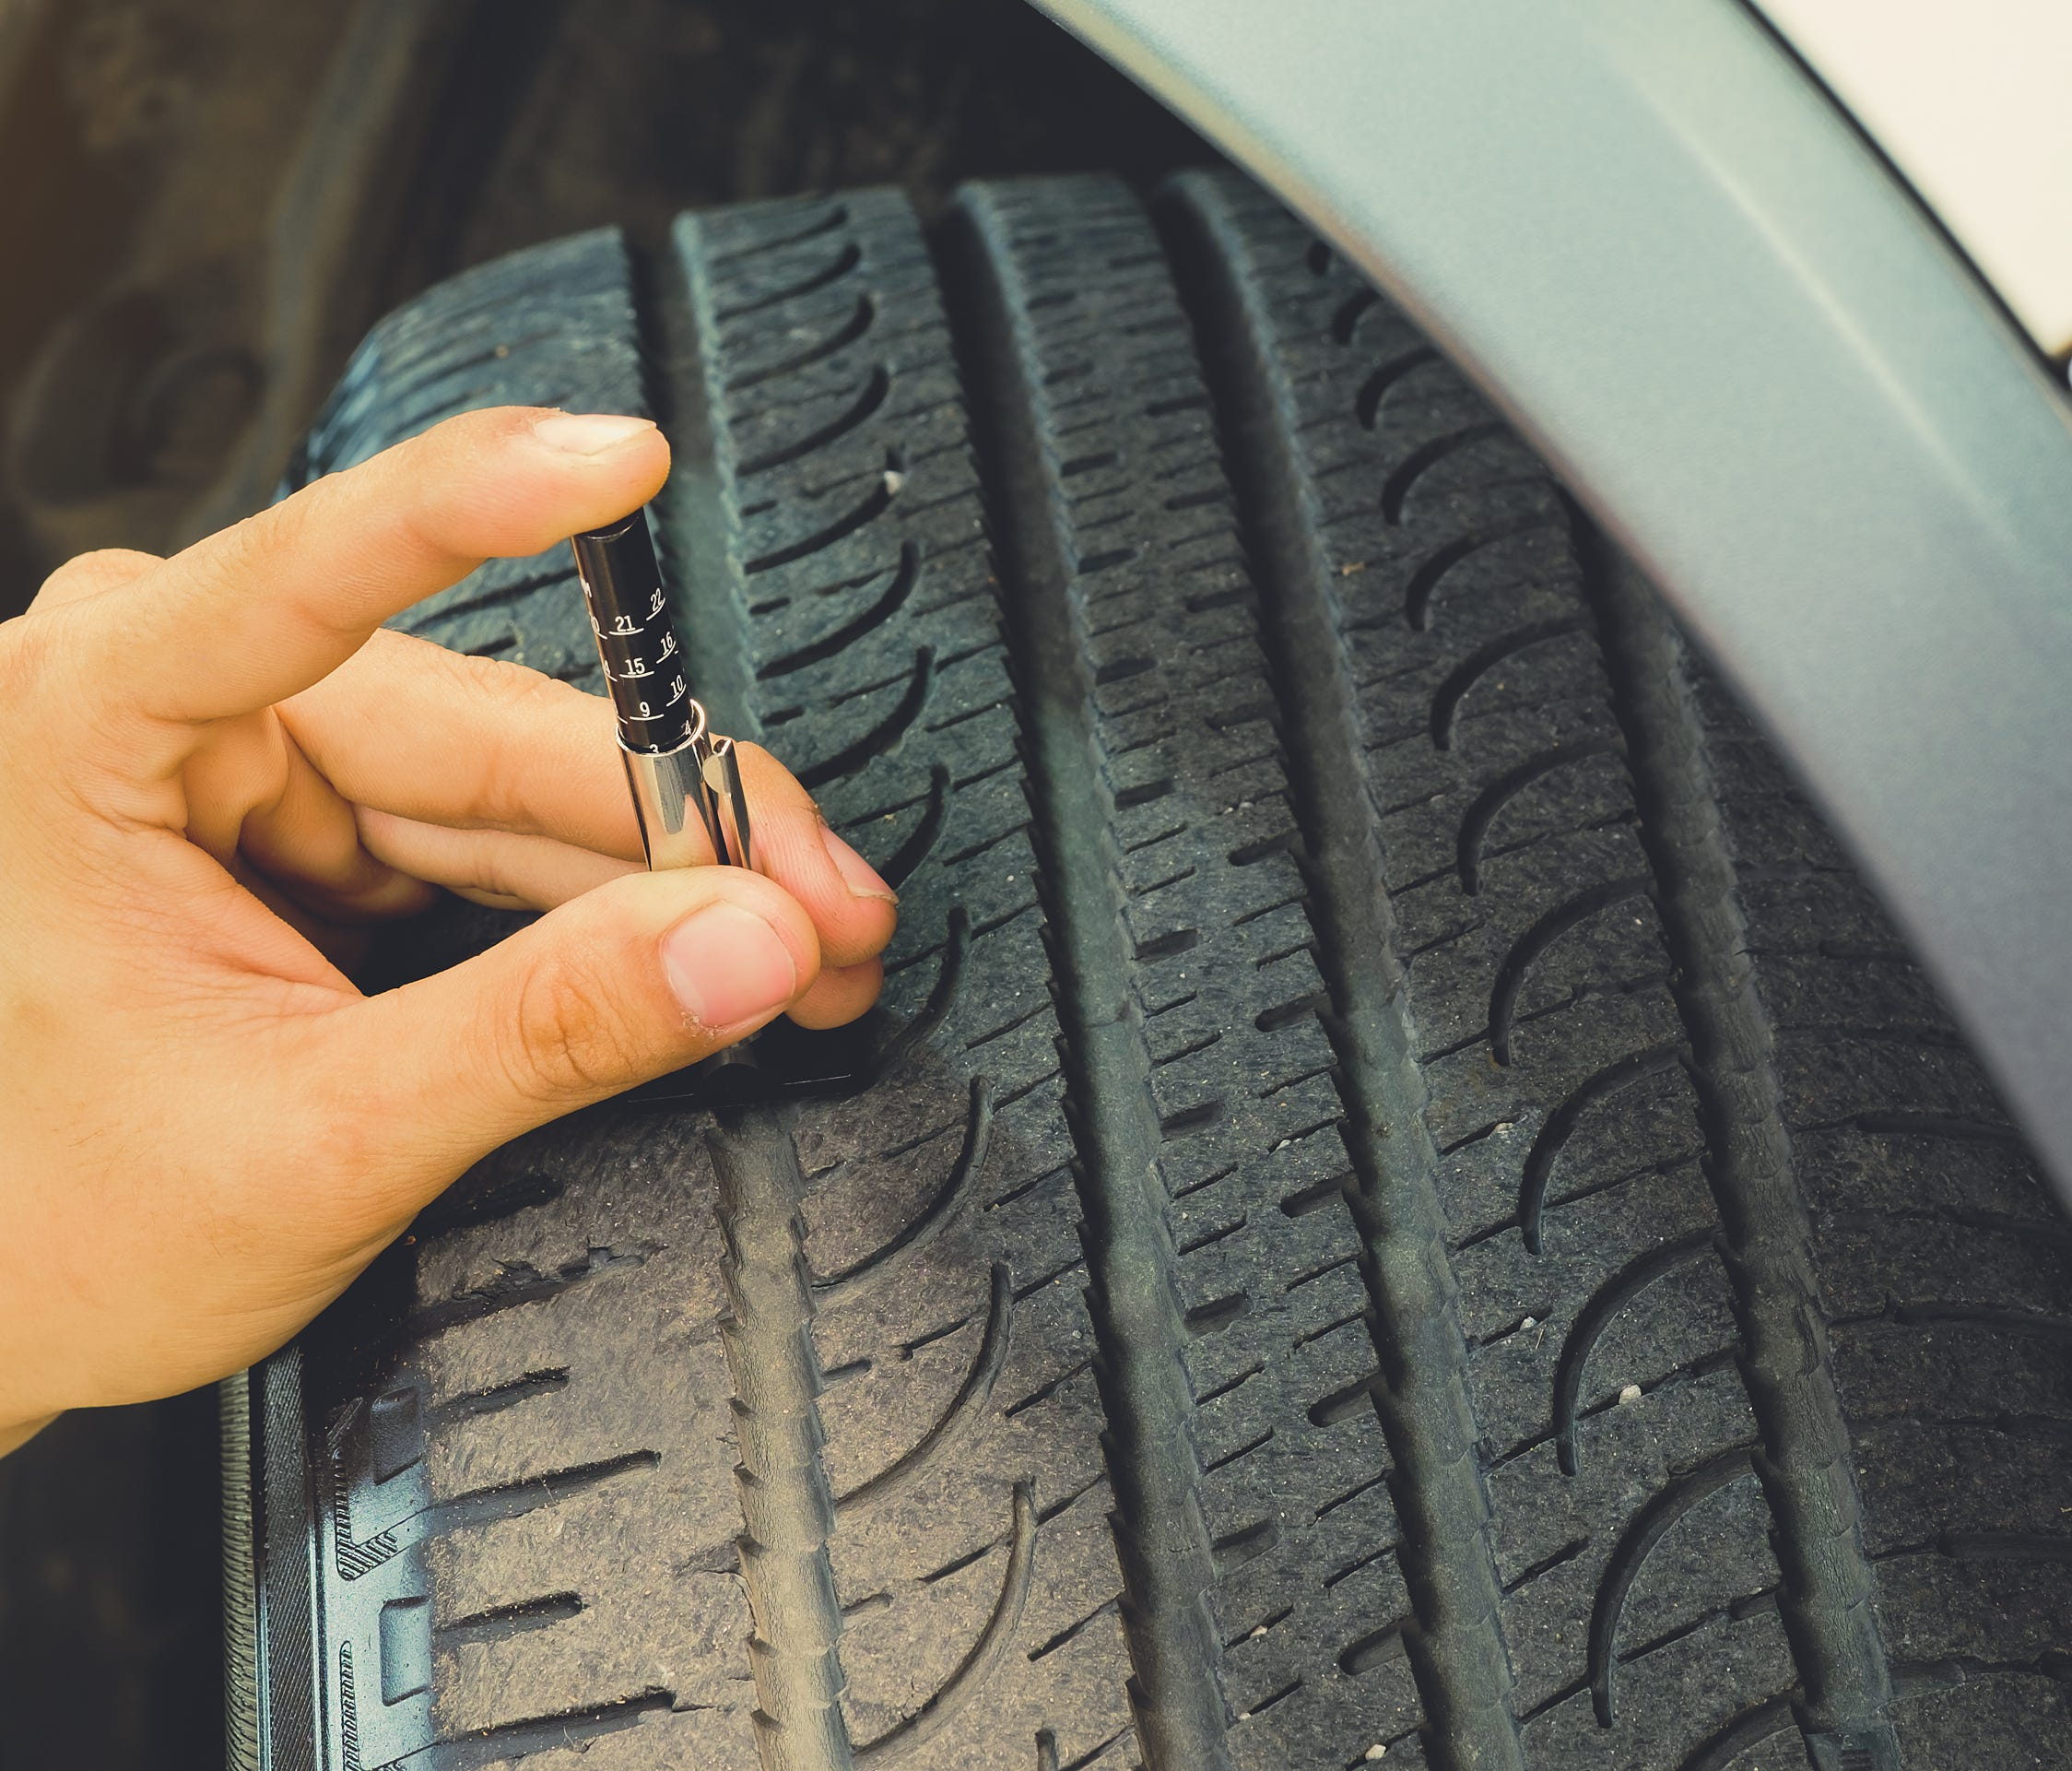 When was the last time you checked your tires' tread depth? You should do it before every road trip.